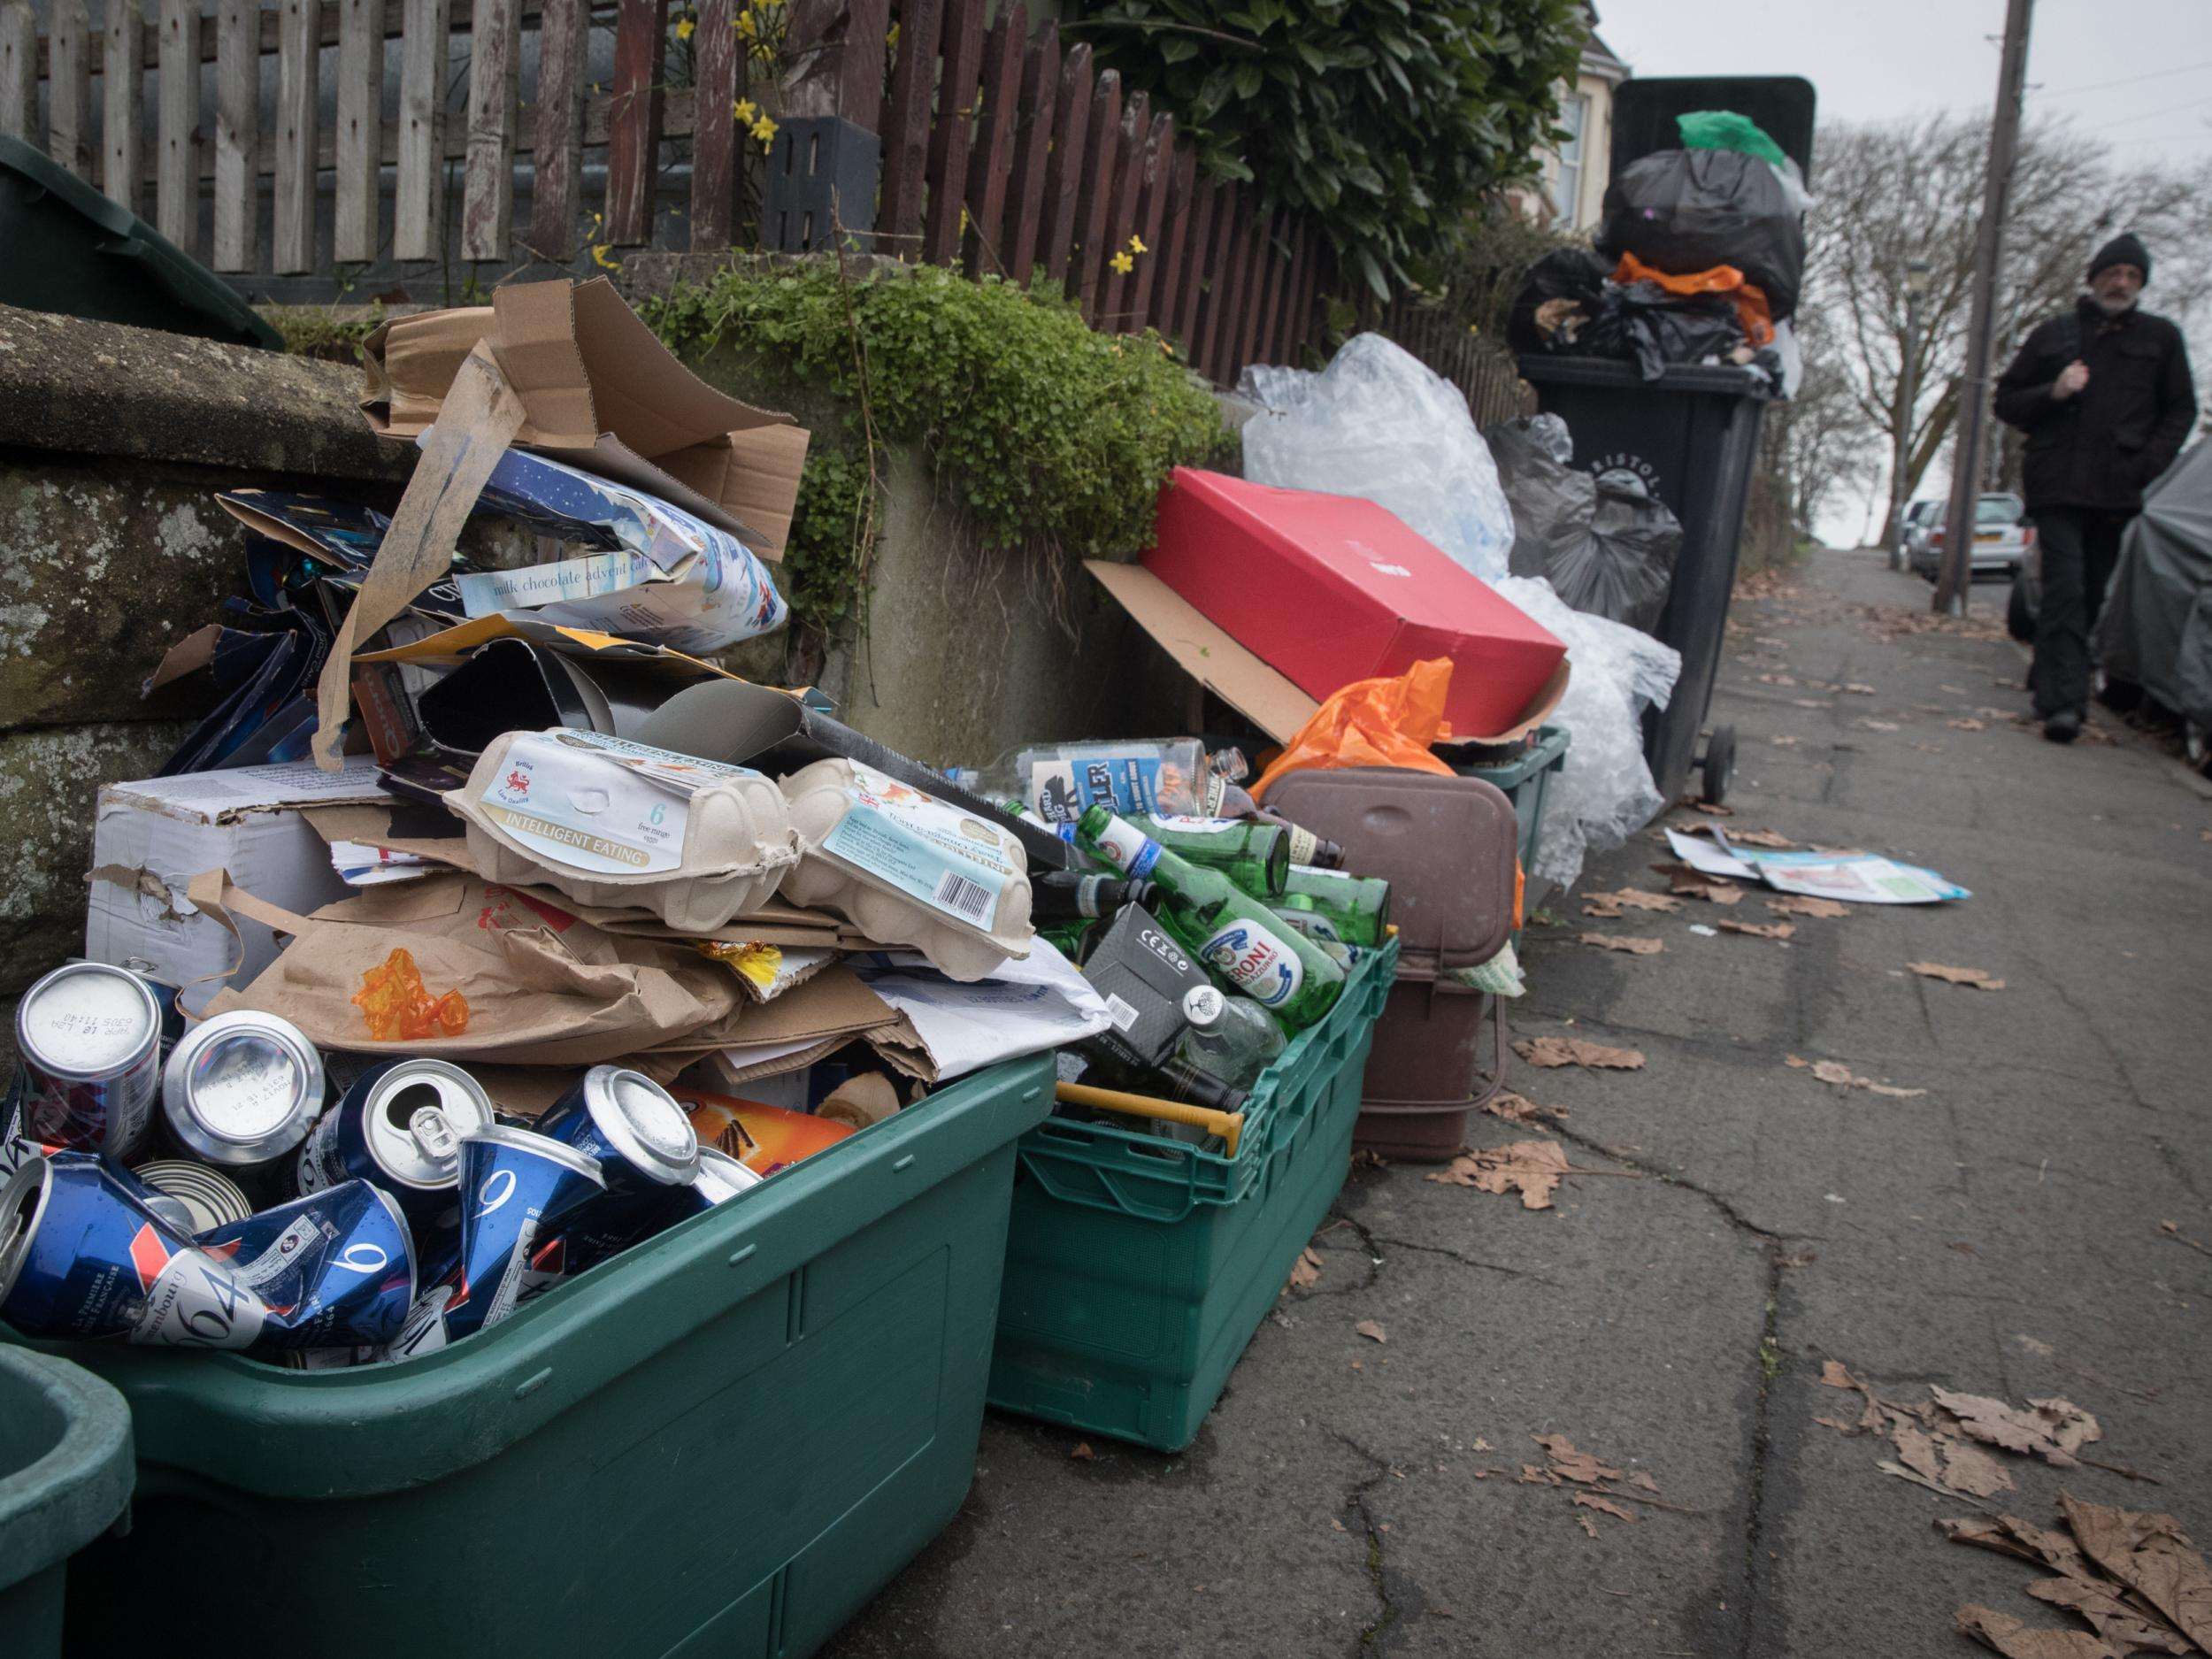 Recycling costs surge for UK councils after Chinese ban on 'foreign